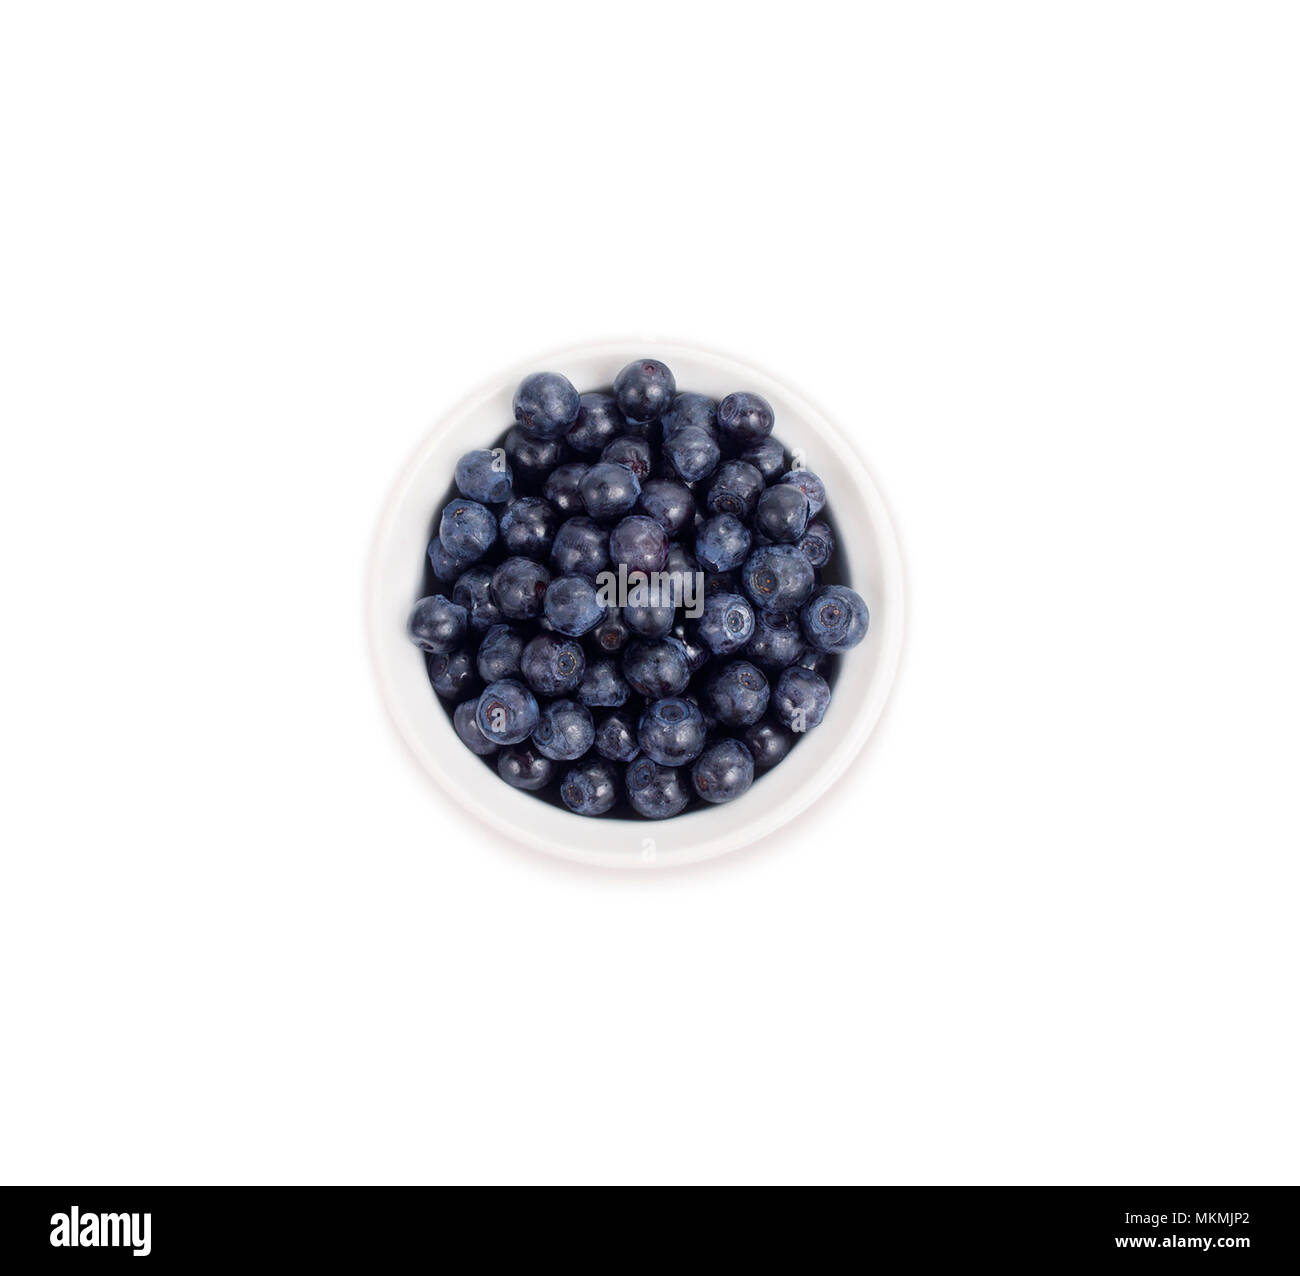 Bilberries in a wooden boin a white ceramic bowl. Top view. Ripe and tasty blueberries isolated on white background. Stock Photo